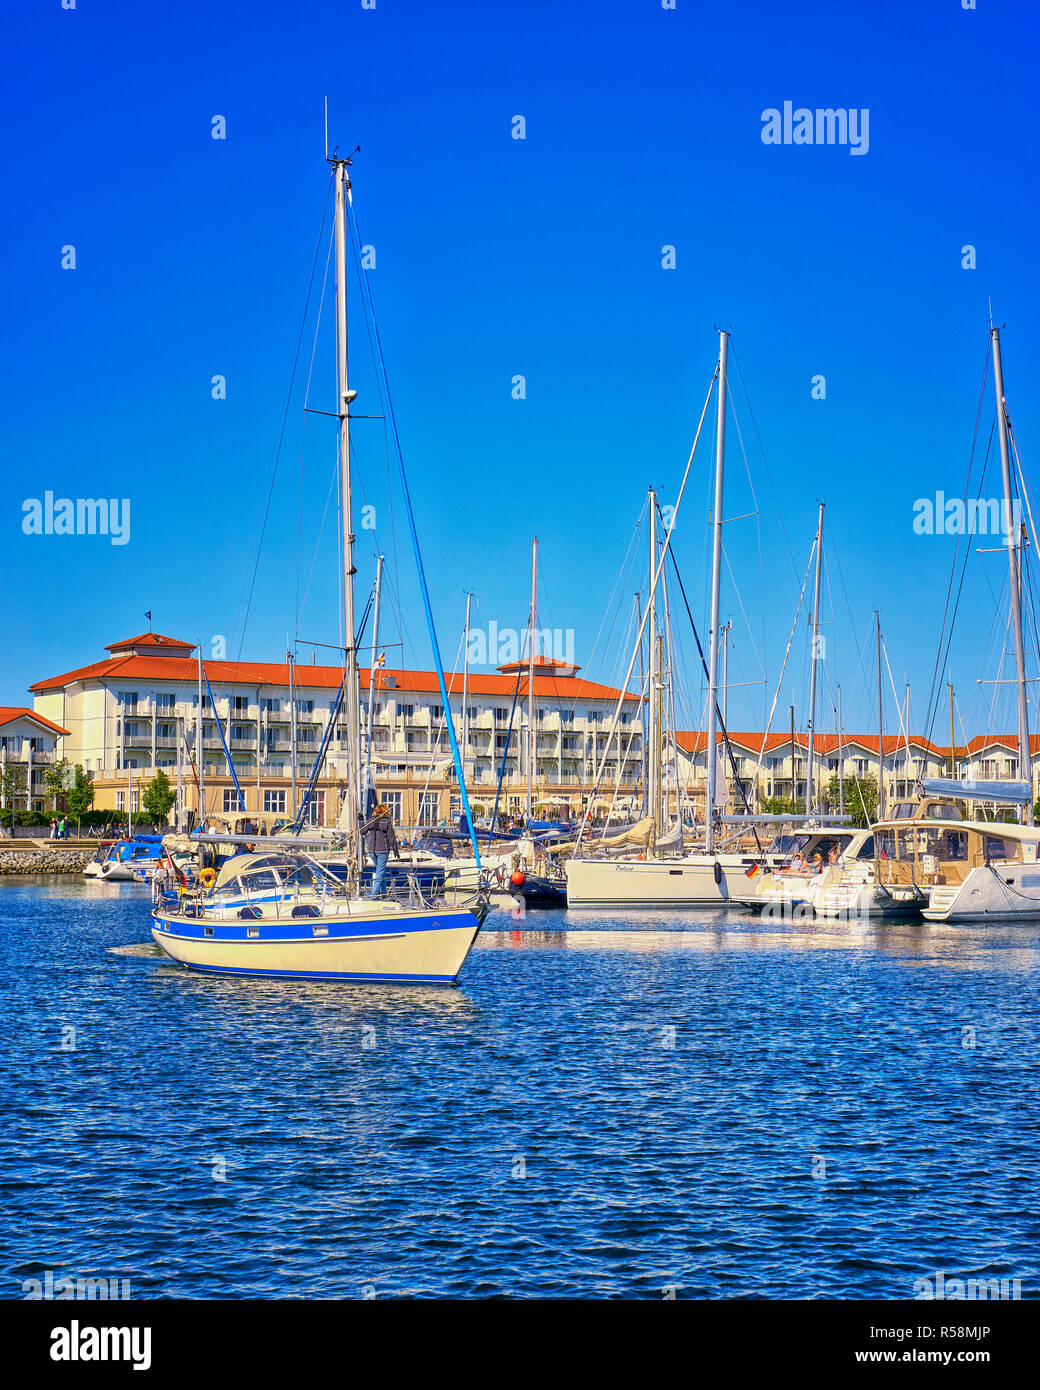 Holiday houses with sailboats in the harbor Weiße Wiek. - Stock Image